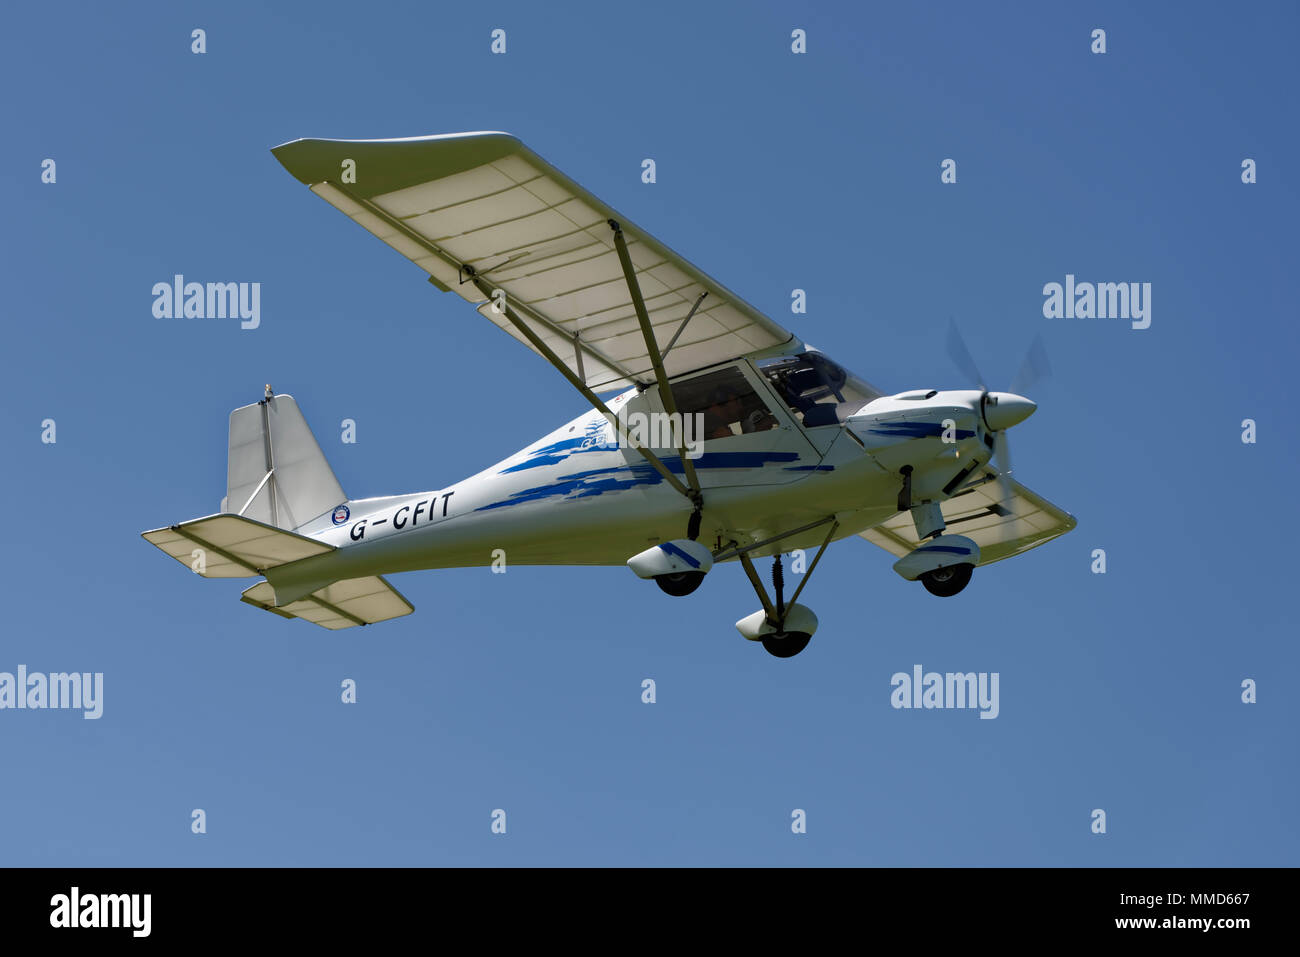 Ikarus C42 Light Aircraft Zieht Aus Popham Flugplatz In Hampshire Uk